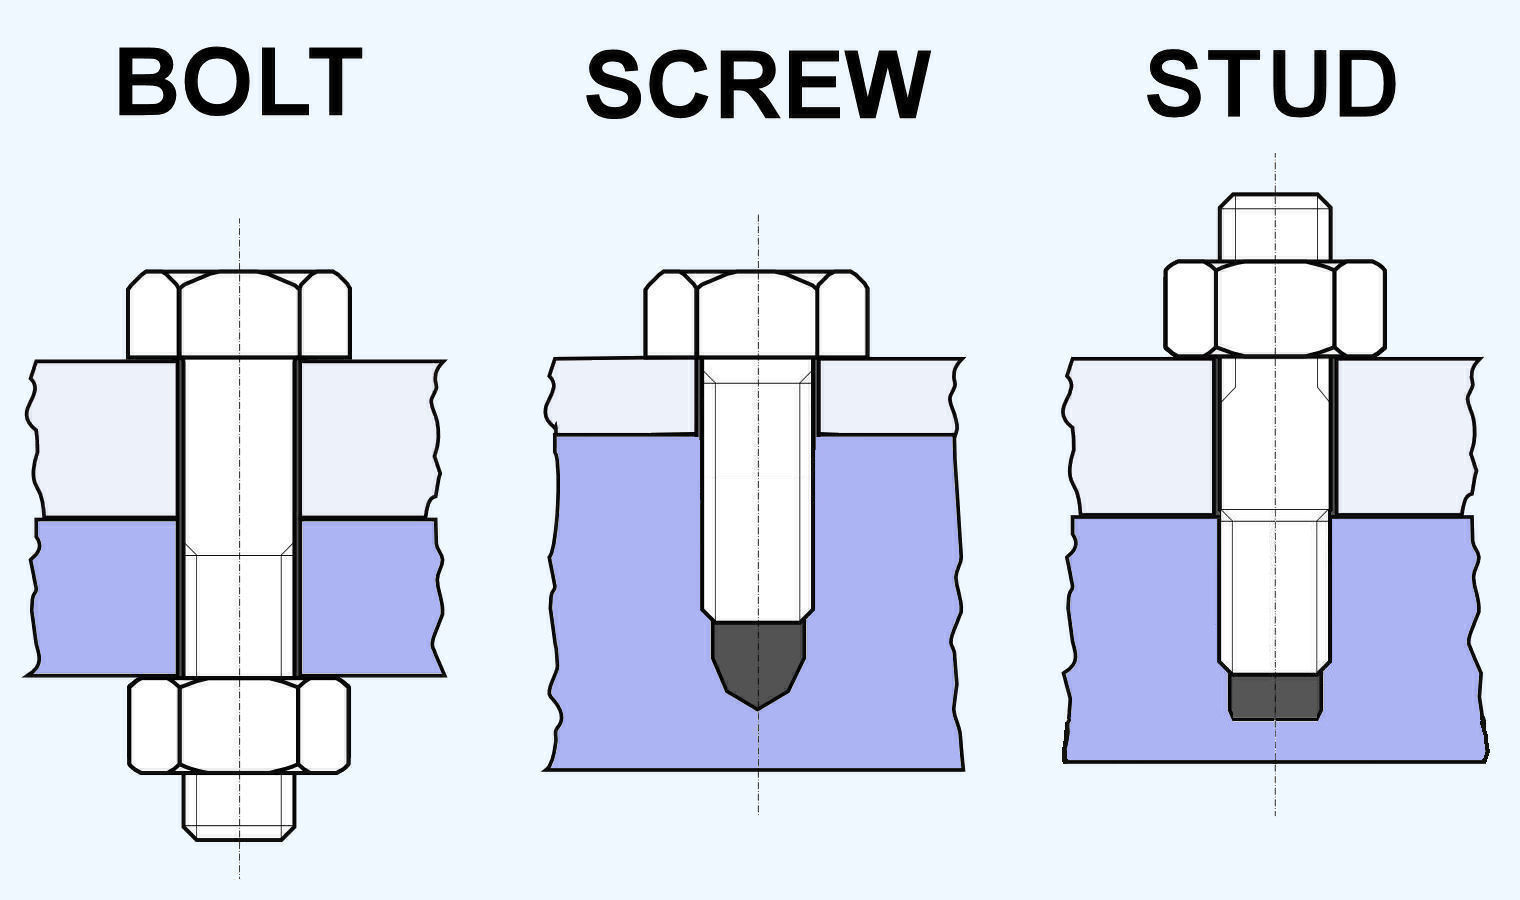 Difference Between Bolt Screw And Stud Mechanical Engineering Questions Mechanical Engineering